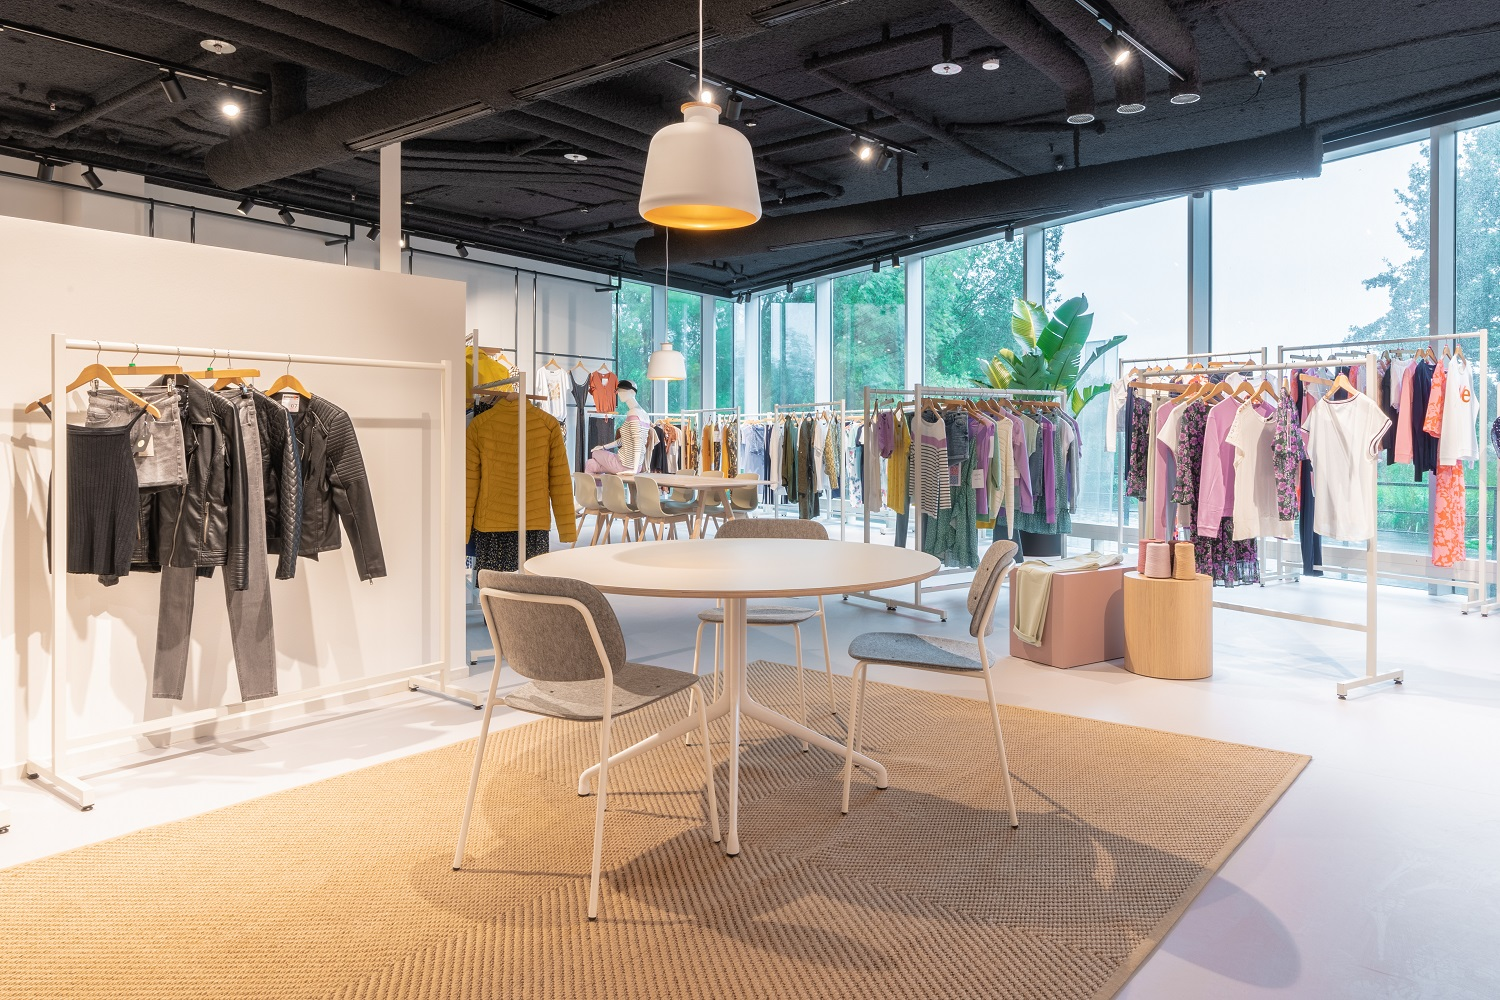 Showroom HVEG Fashion Linq Leusden